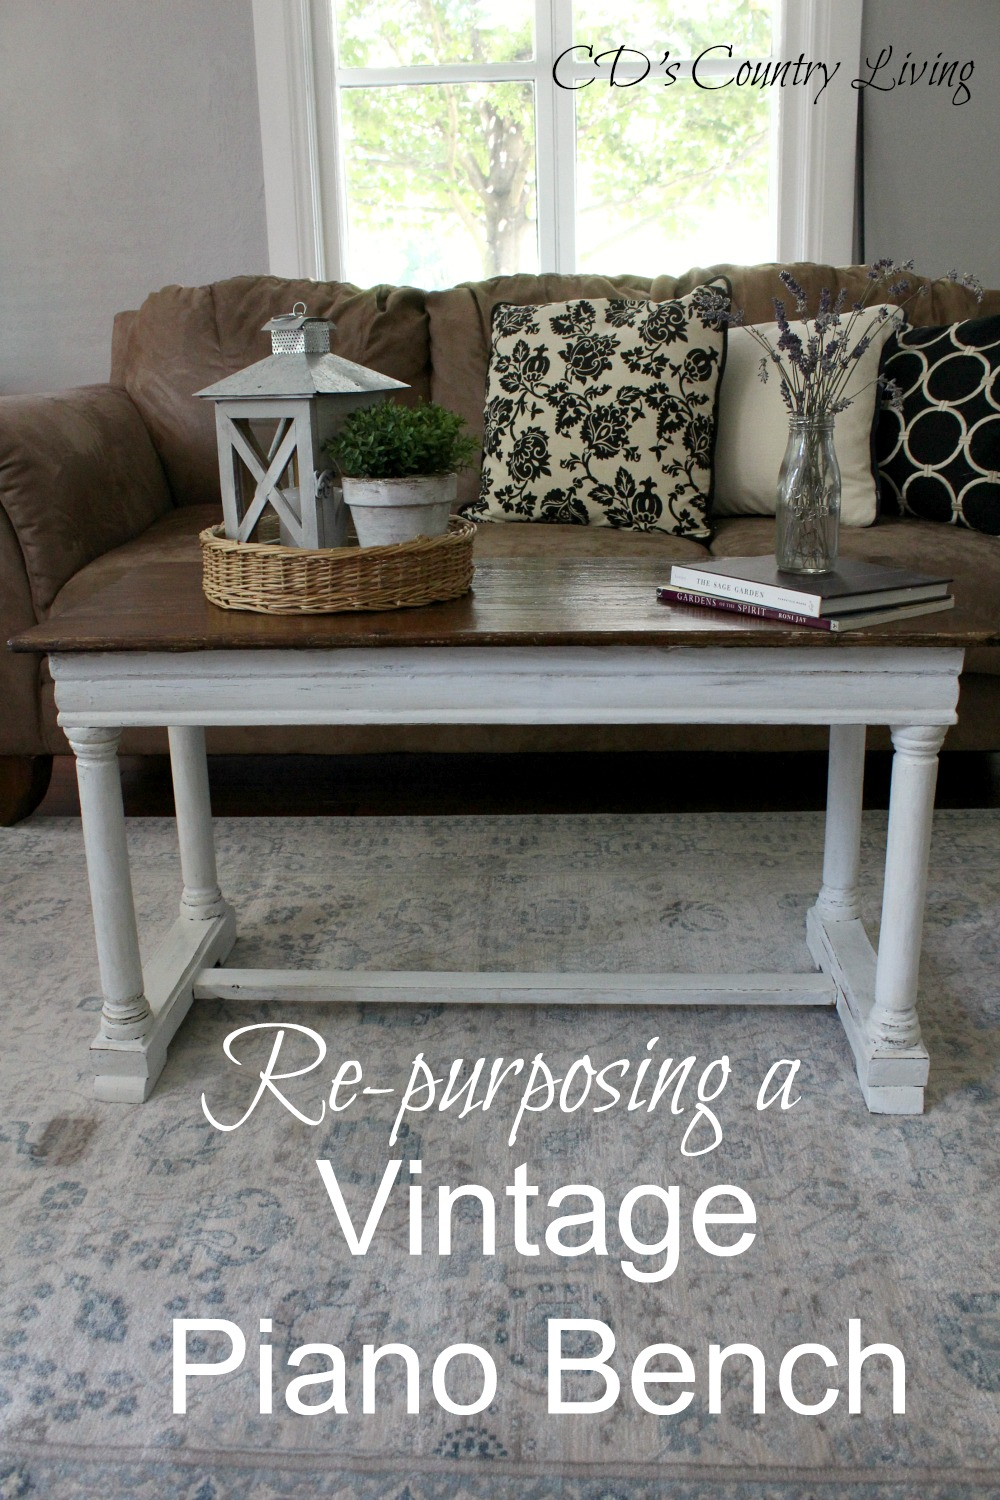 Repurposing a Vintage Piano Bench